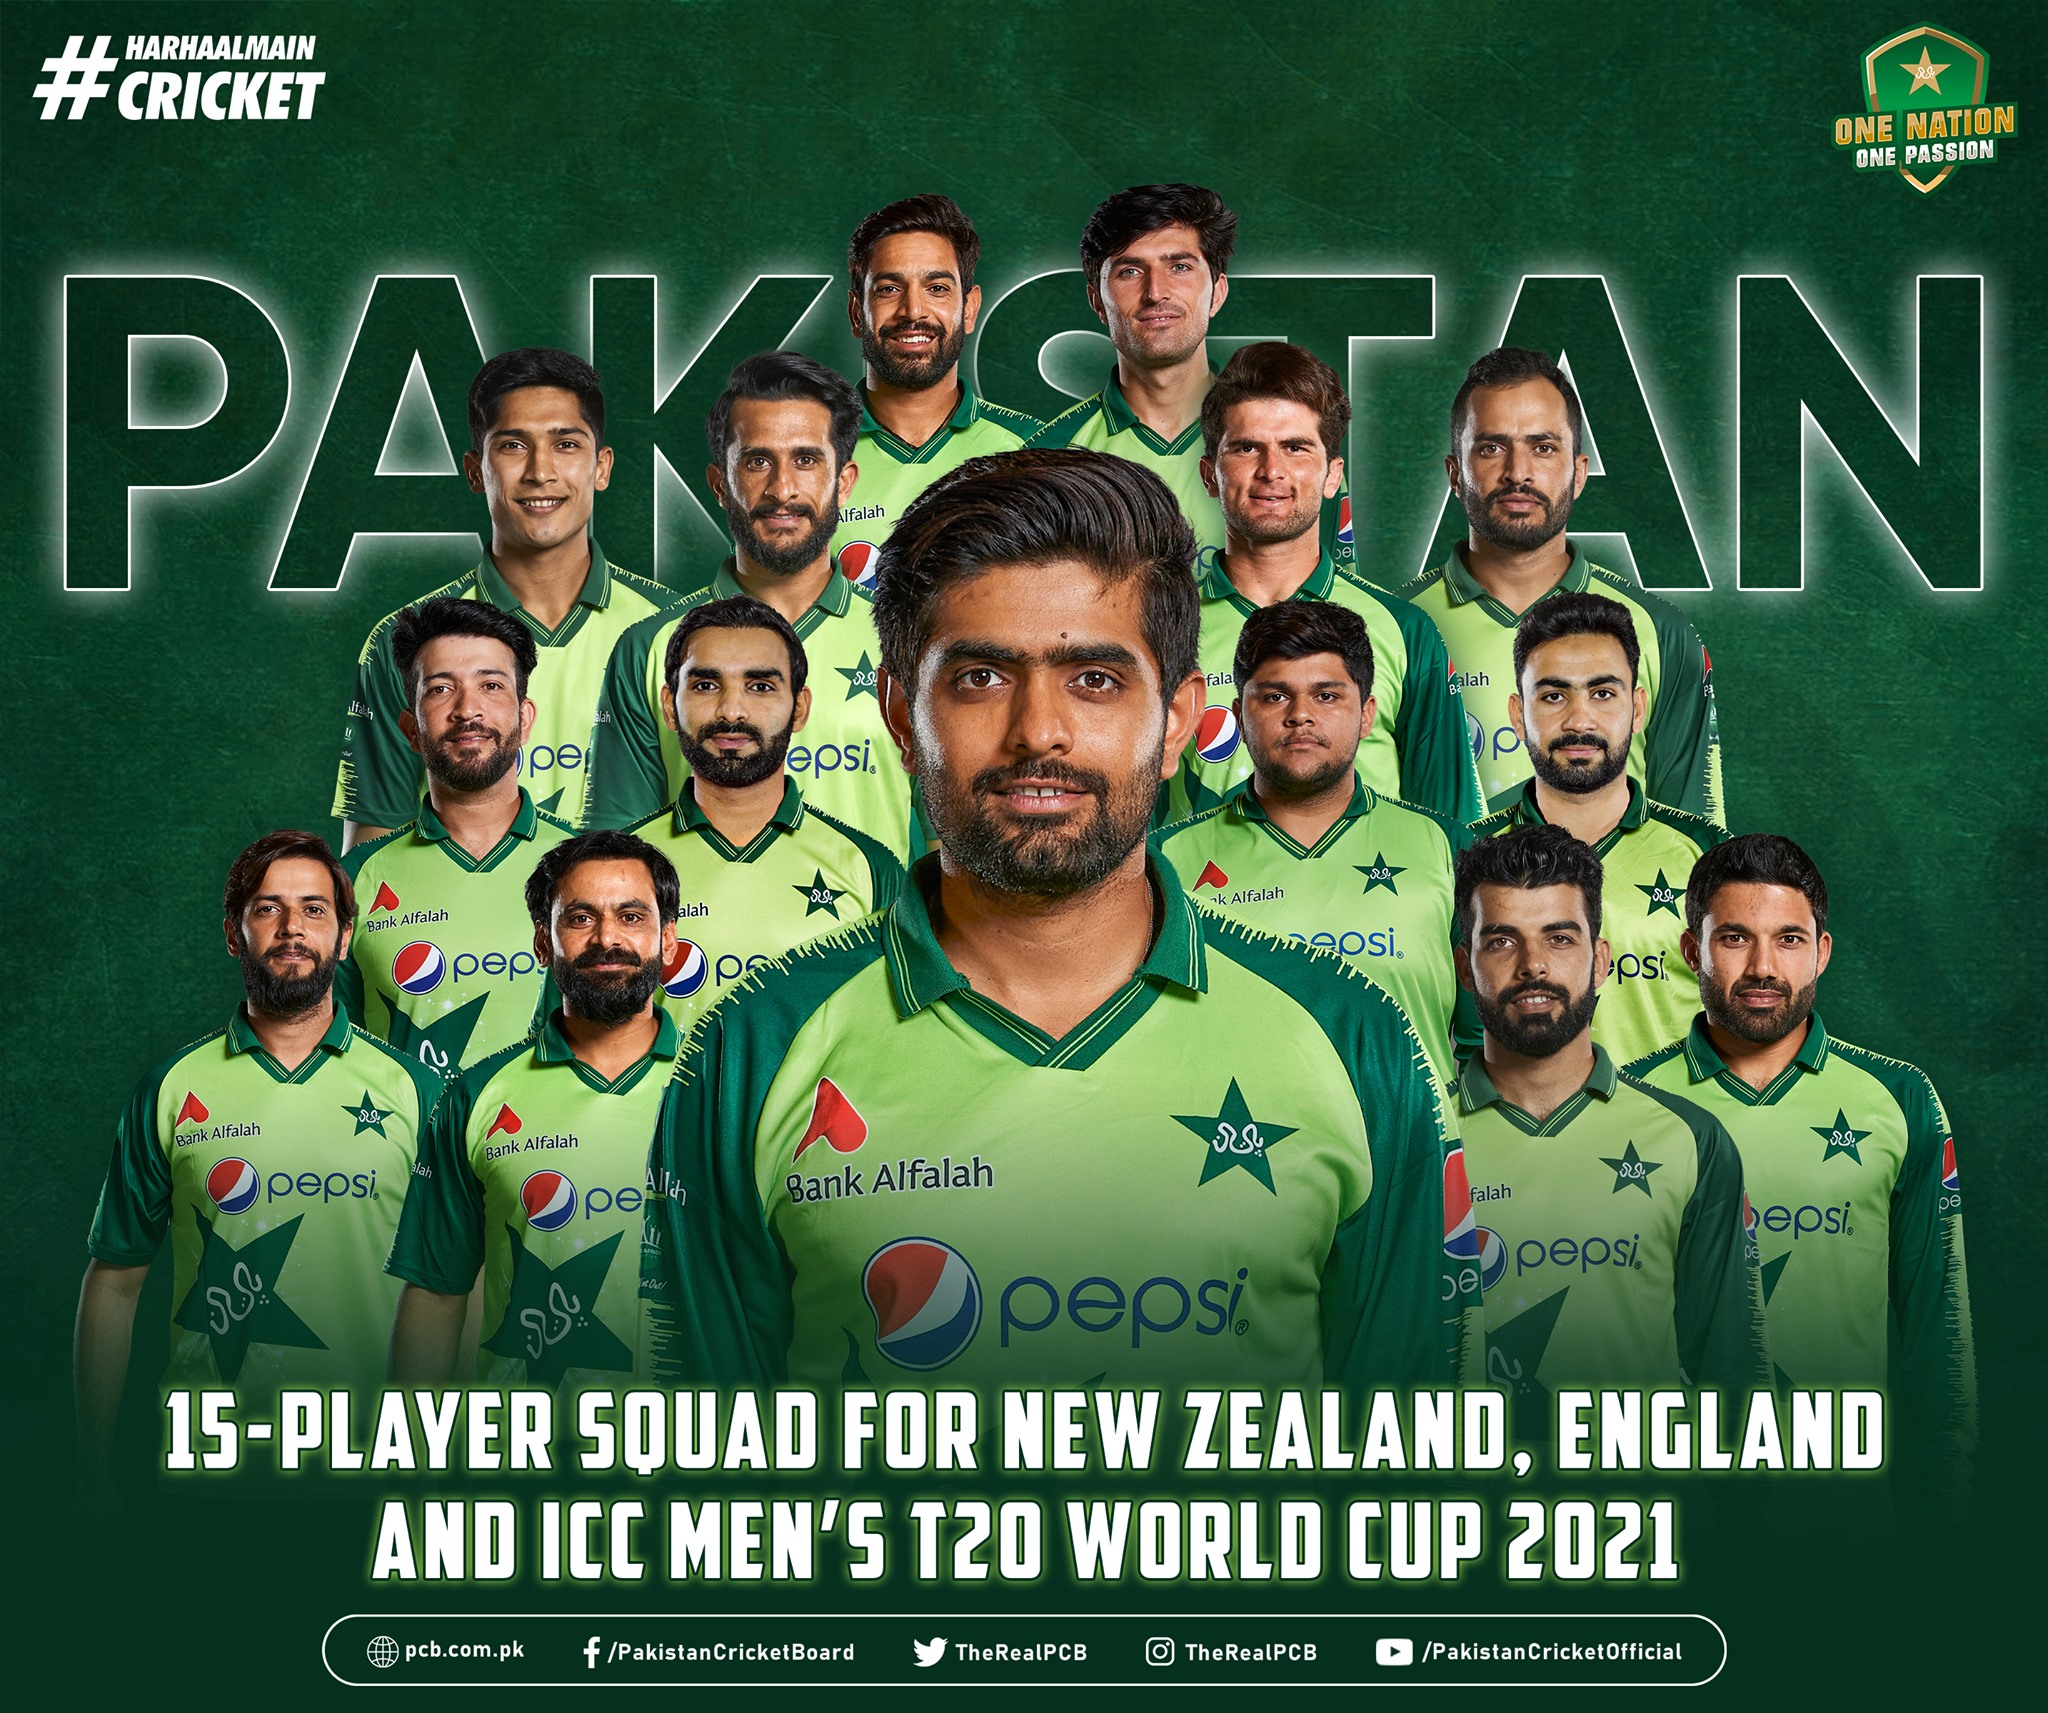 Men's T20 World Cup 2021 Pakistan Team Squad, Players List, Playing 11